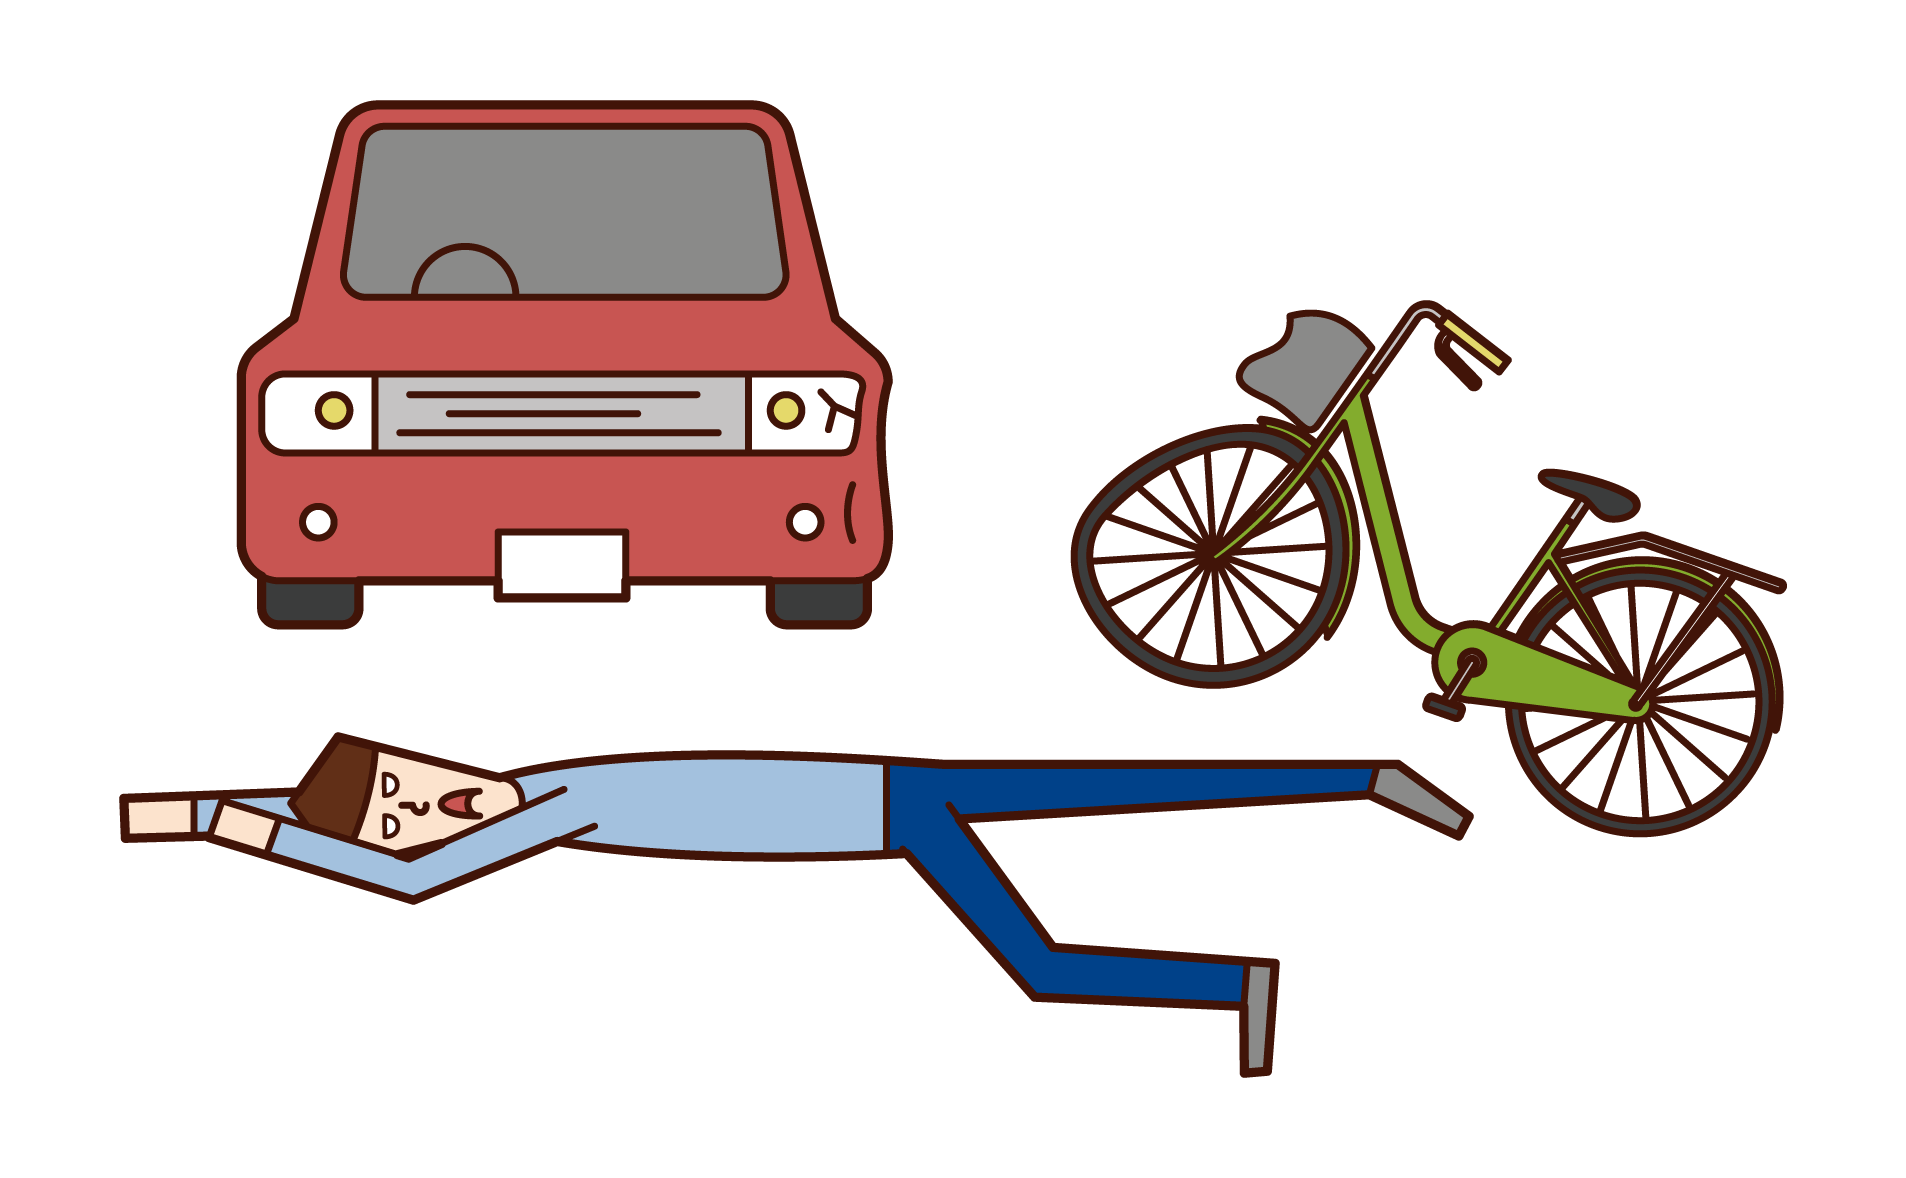 Illustration of a man who is collapsed in a traffic accident